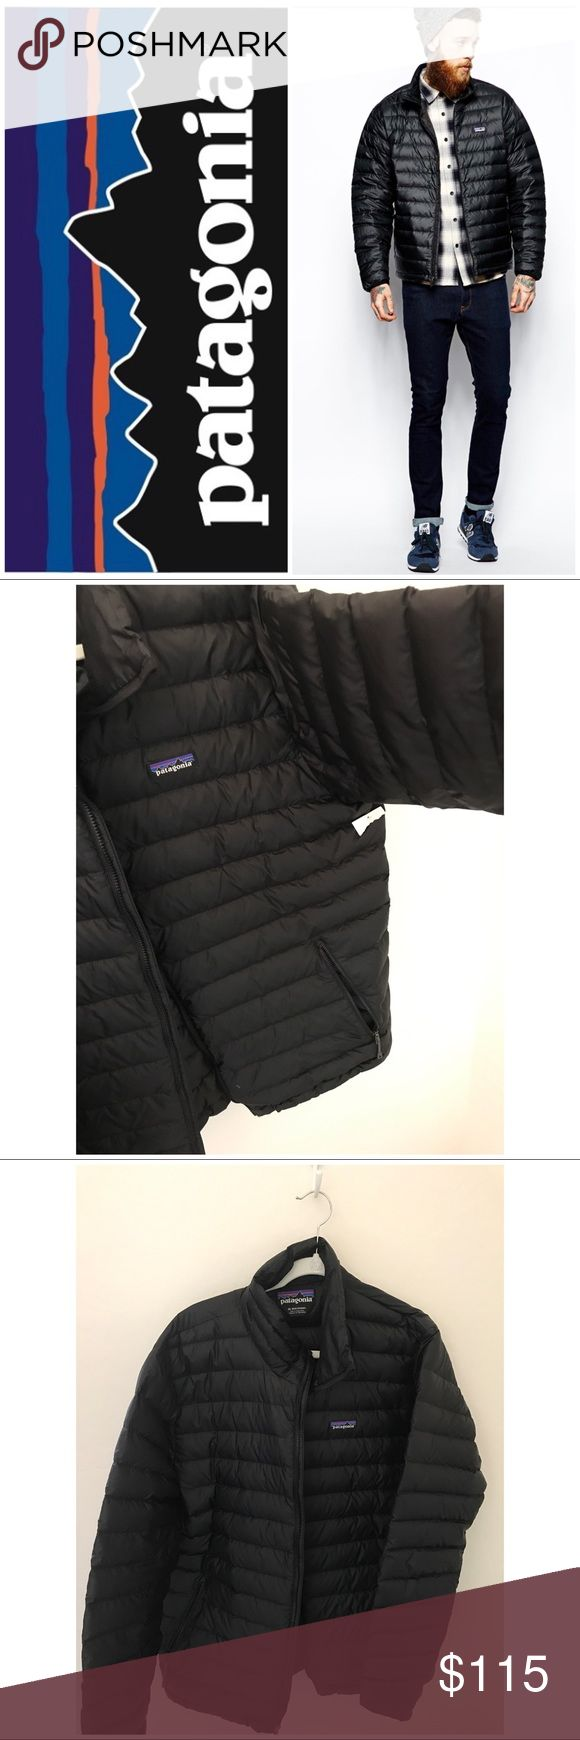 Patagonia, down sweater jacket, xl, black Its time to start thinking about fall. Bought this for my son at patagonia outlet, and it did not fit. Patagonias, down sweater jacket, xl, black.🚫no trades.The perfect warmth for just about everything, our classic Down Sweater is lightweight and windproof with a 100% recycled polyester ripstop shell and 800-fill-power Traceable Down (goose down traced from parent farm to apparel factory to help ensure the birds that supply it are not force-fed or…